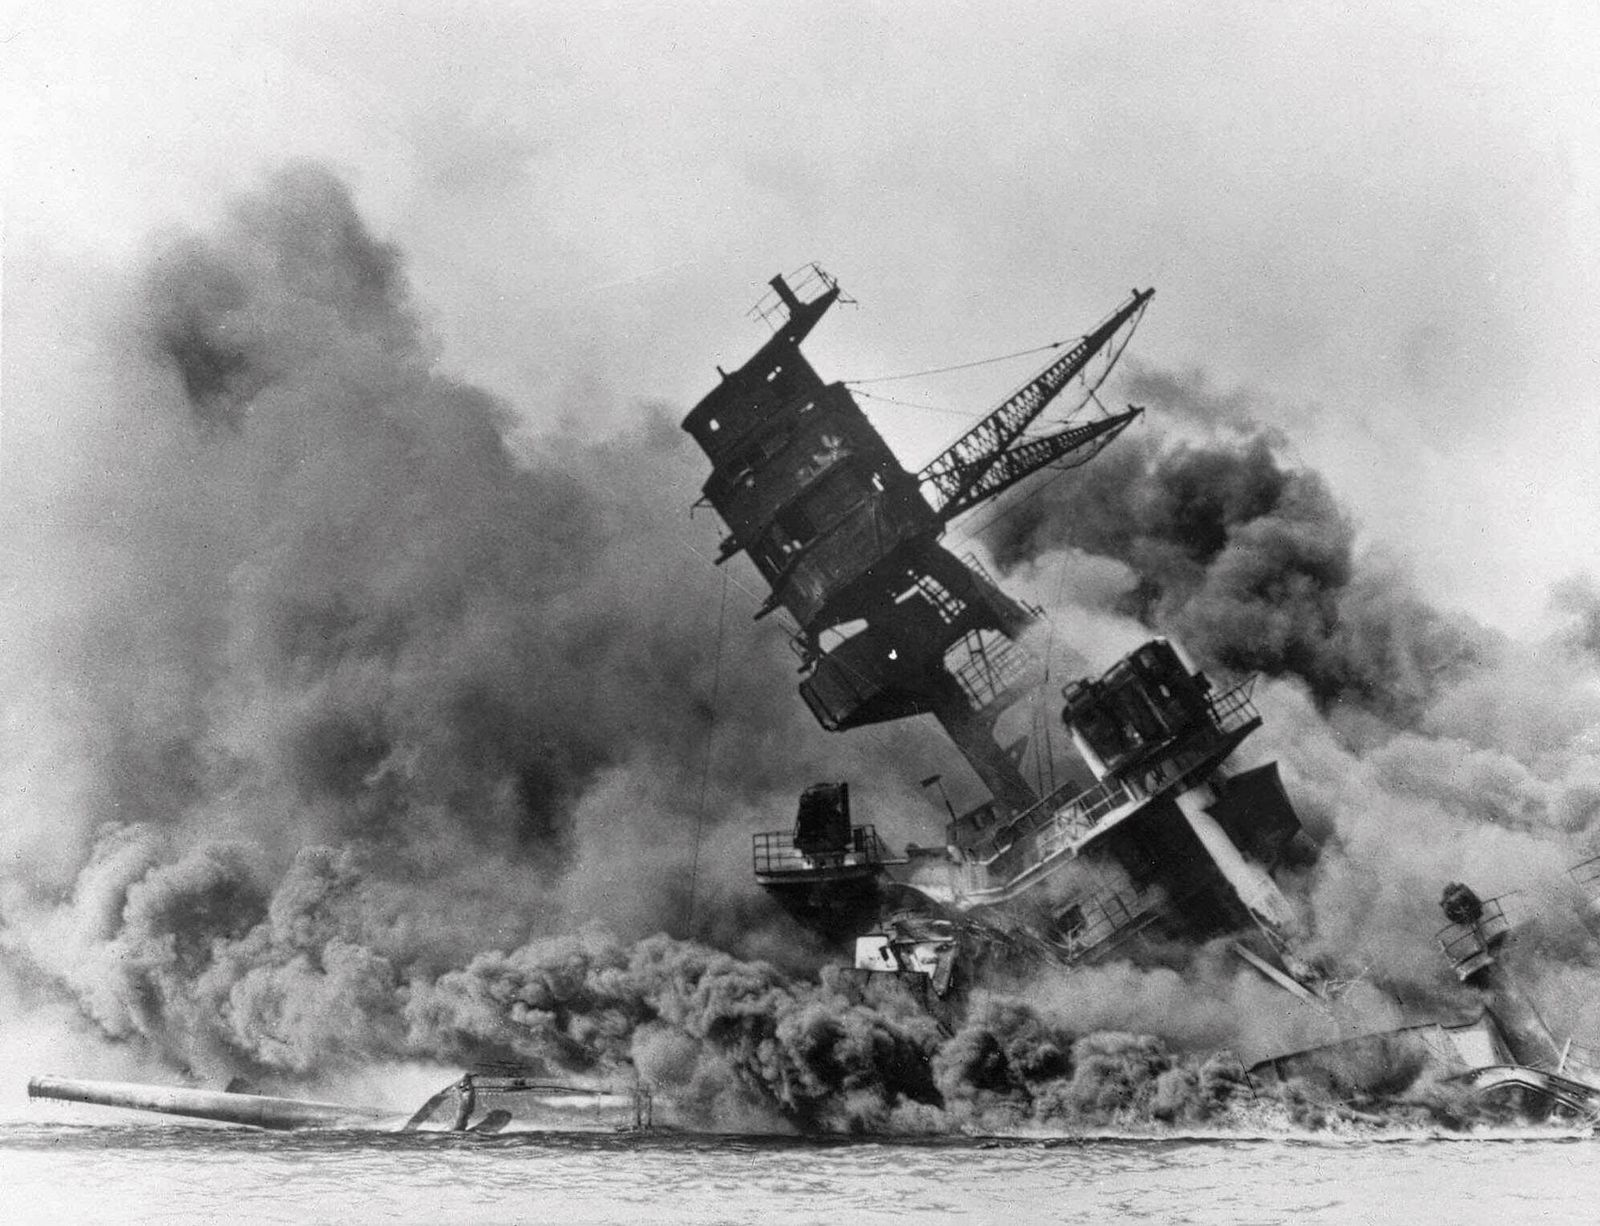 FILE - In this Dec. 7, 1941, file photo, smoke rises from the battleship USS Arizona as it sinks during the Japanese attack on Pearl Harbor, Hawaii. Survivors and members of the public are expected to gather in Pearl Harbor on Saturday, Dec. 7, 2019, to remember those killed when Japanese planes bombed the Hawaii naval base 78 years ago and launched the U.S. into World War II. Organizers plan for about a dozen survivors of the attack to attend the annual ceremony, the youngest of whom are now in their late 90s. (AP Photo, File)